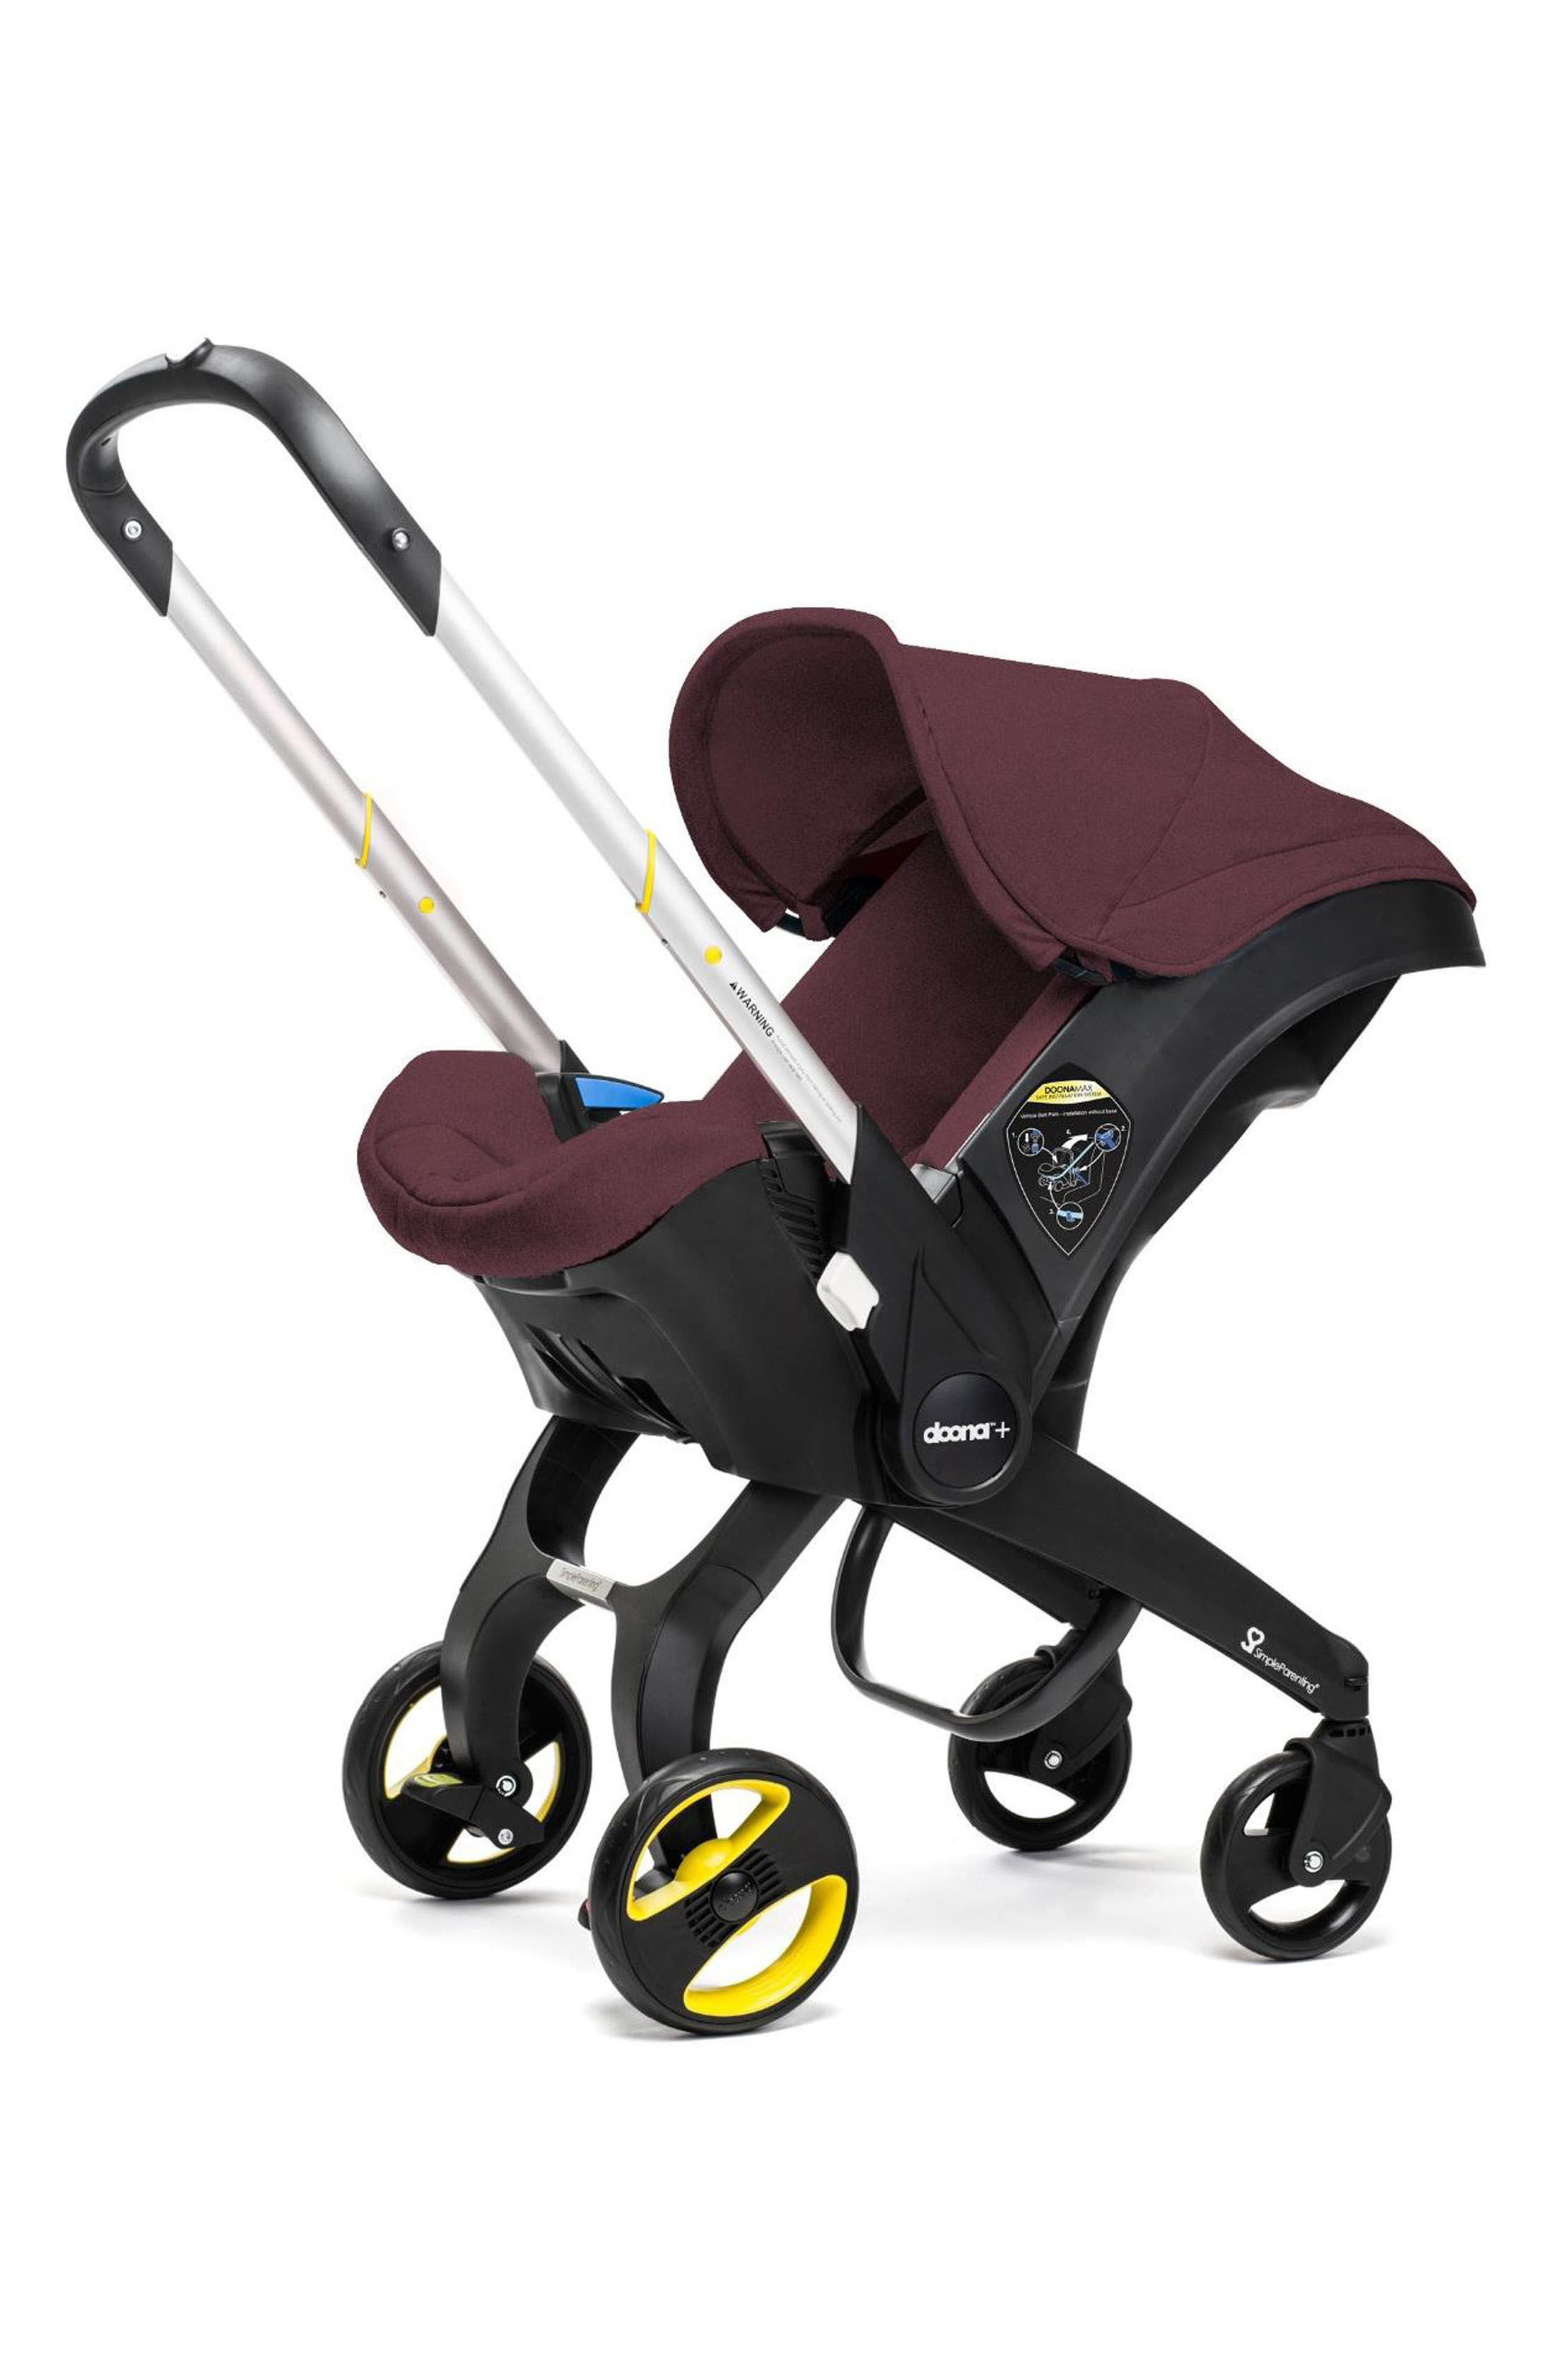 Convertible Infant Car Seat/Compact Stroller System, Main, color, 930